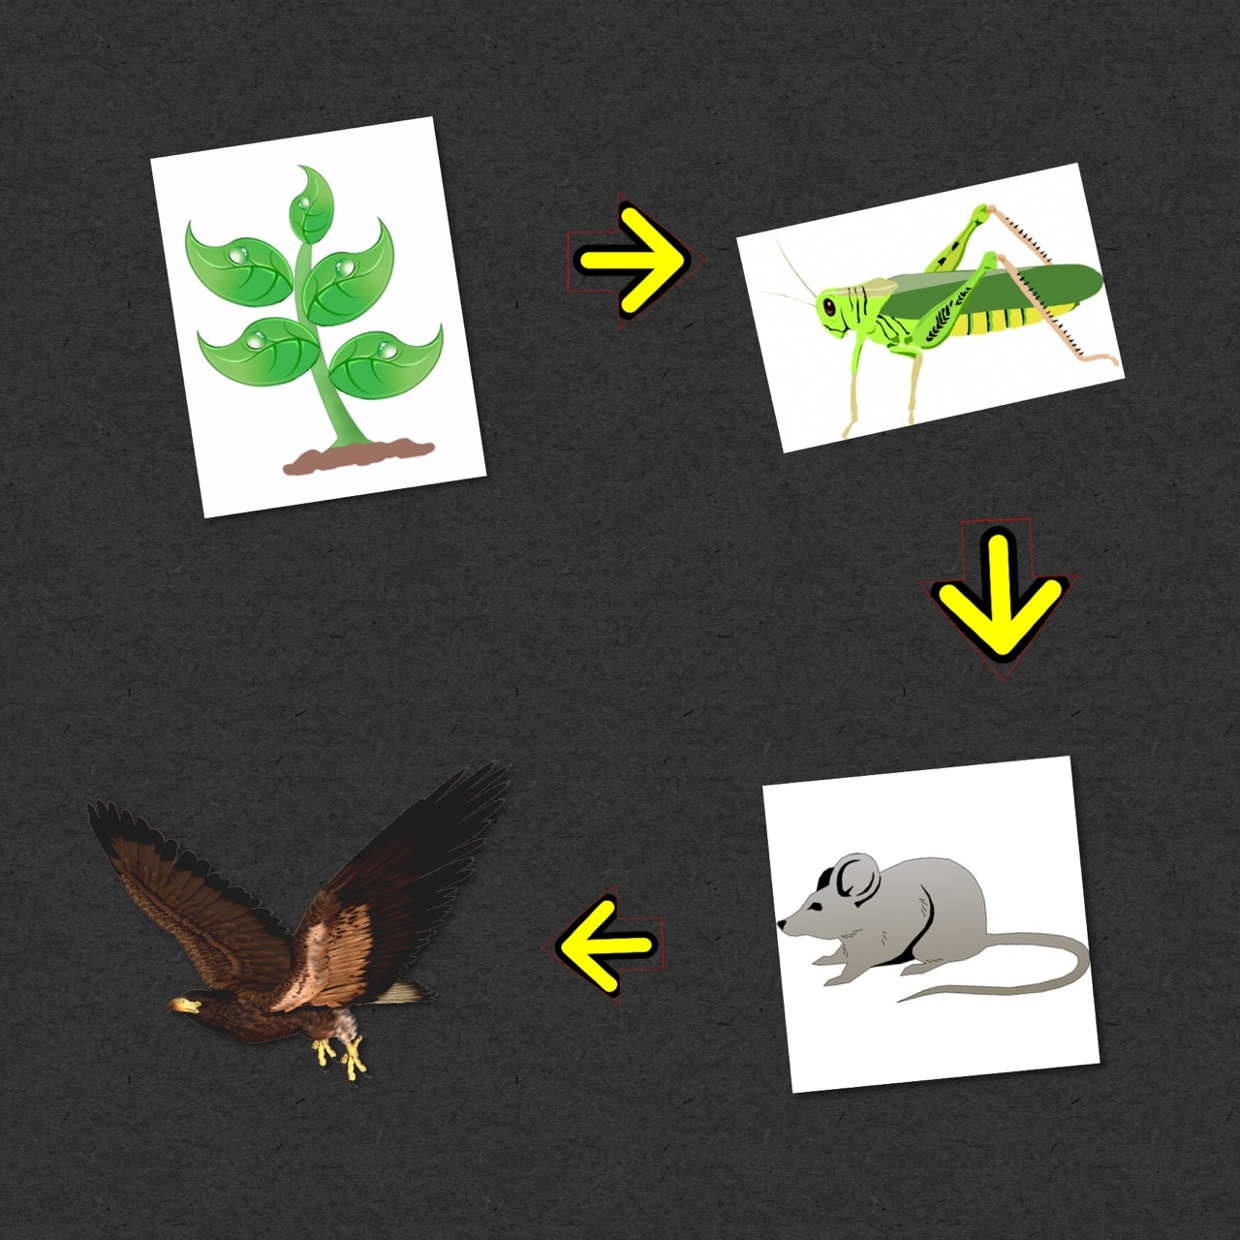 Food chain example.